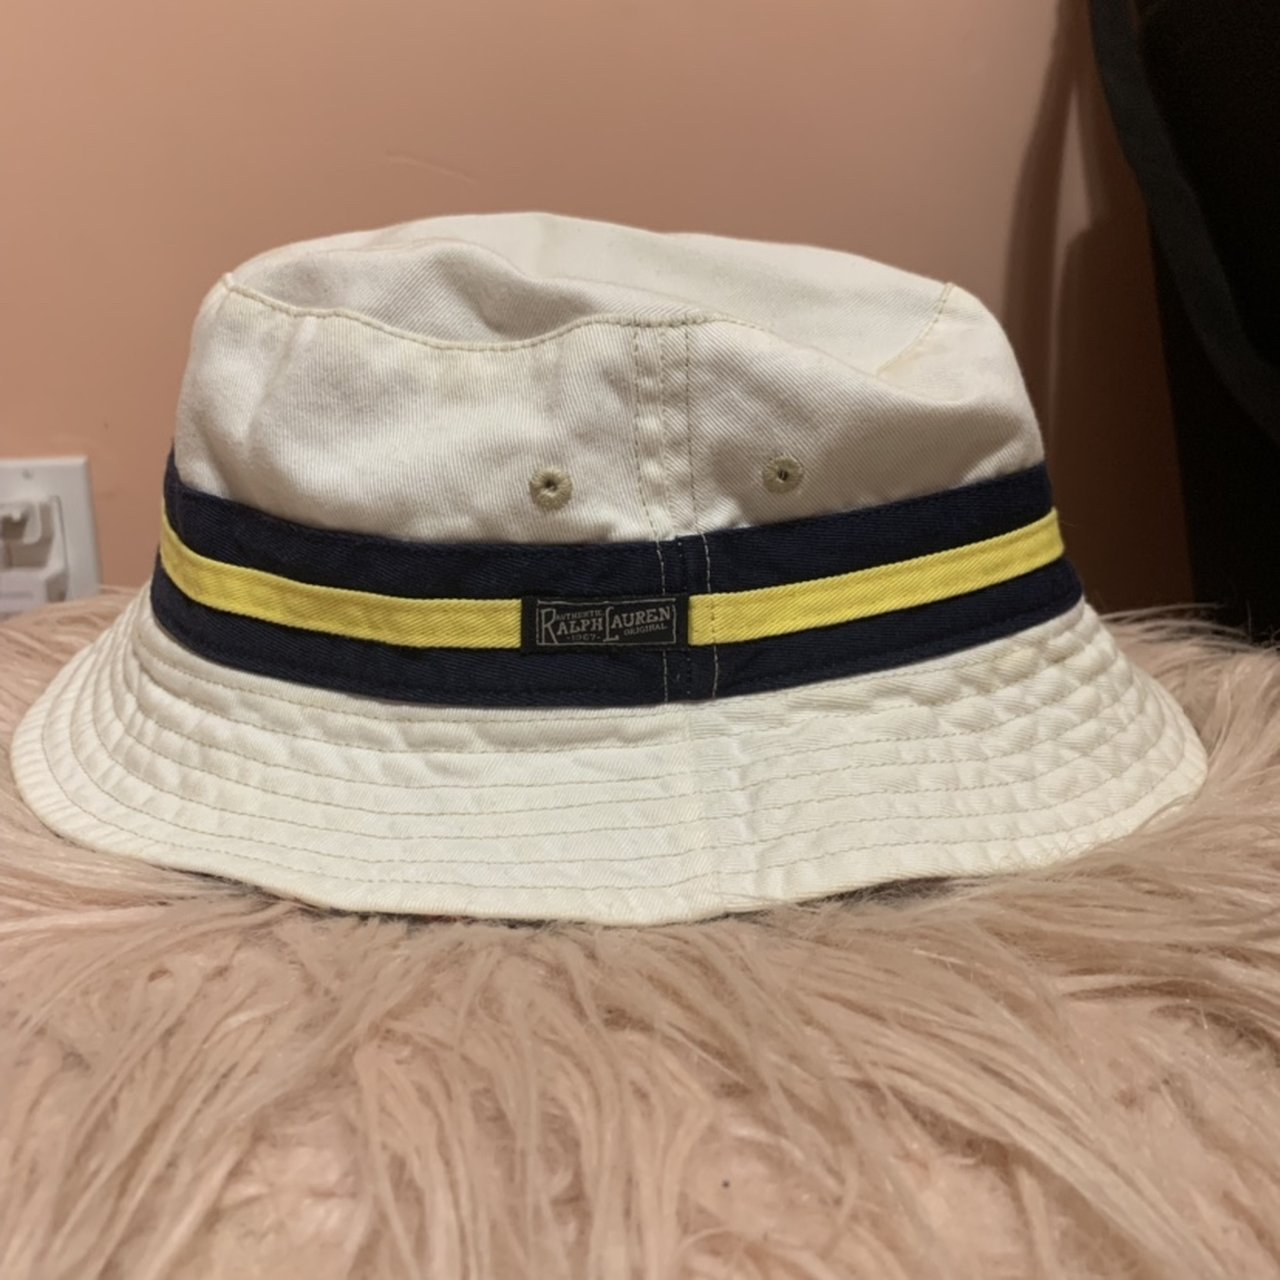 fca5ff14488 Polo Ralph Lauren reversible bucket hat White colorway with - Depop